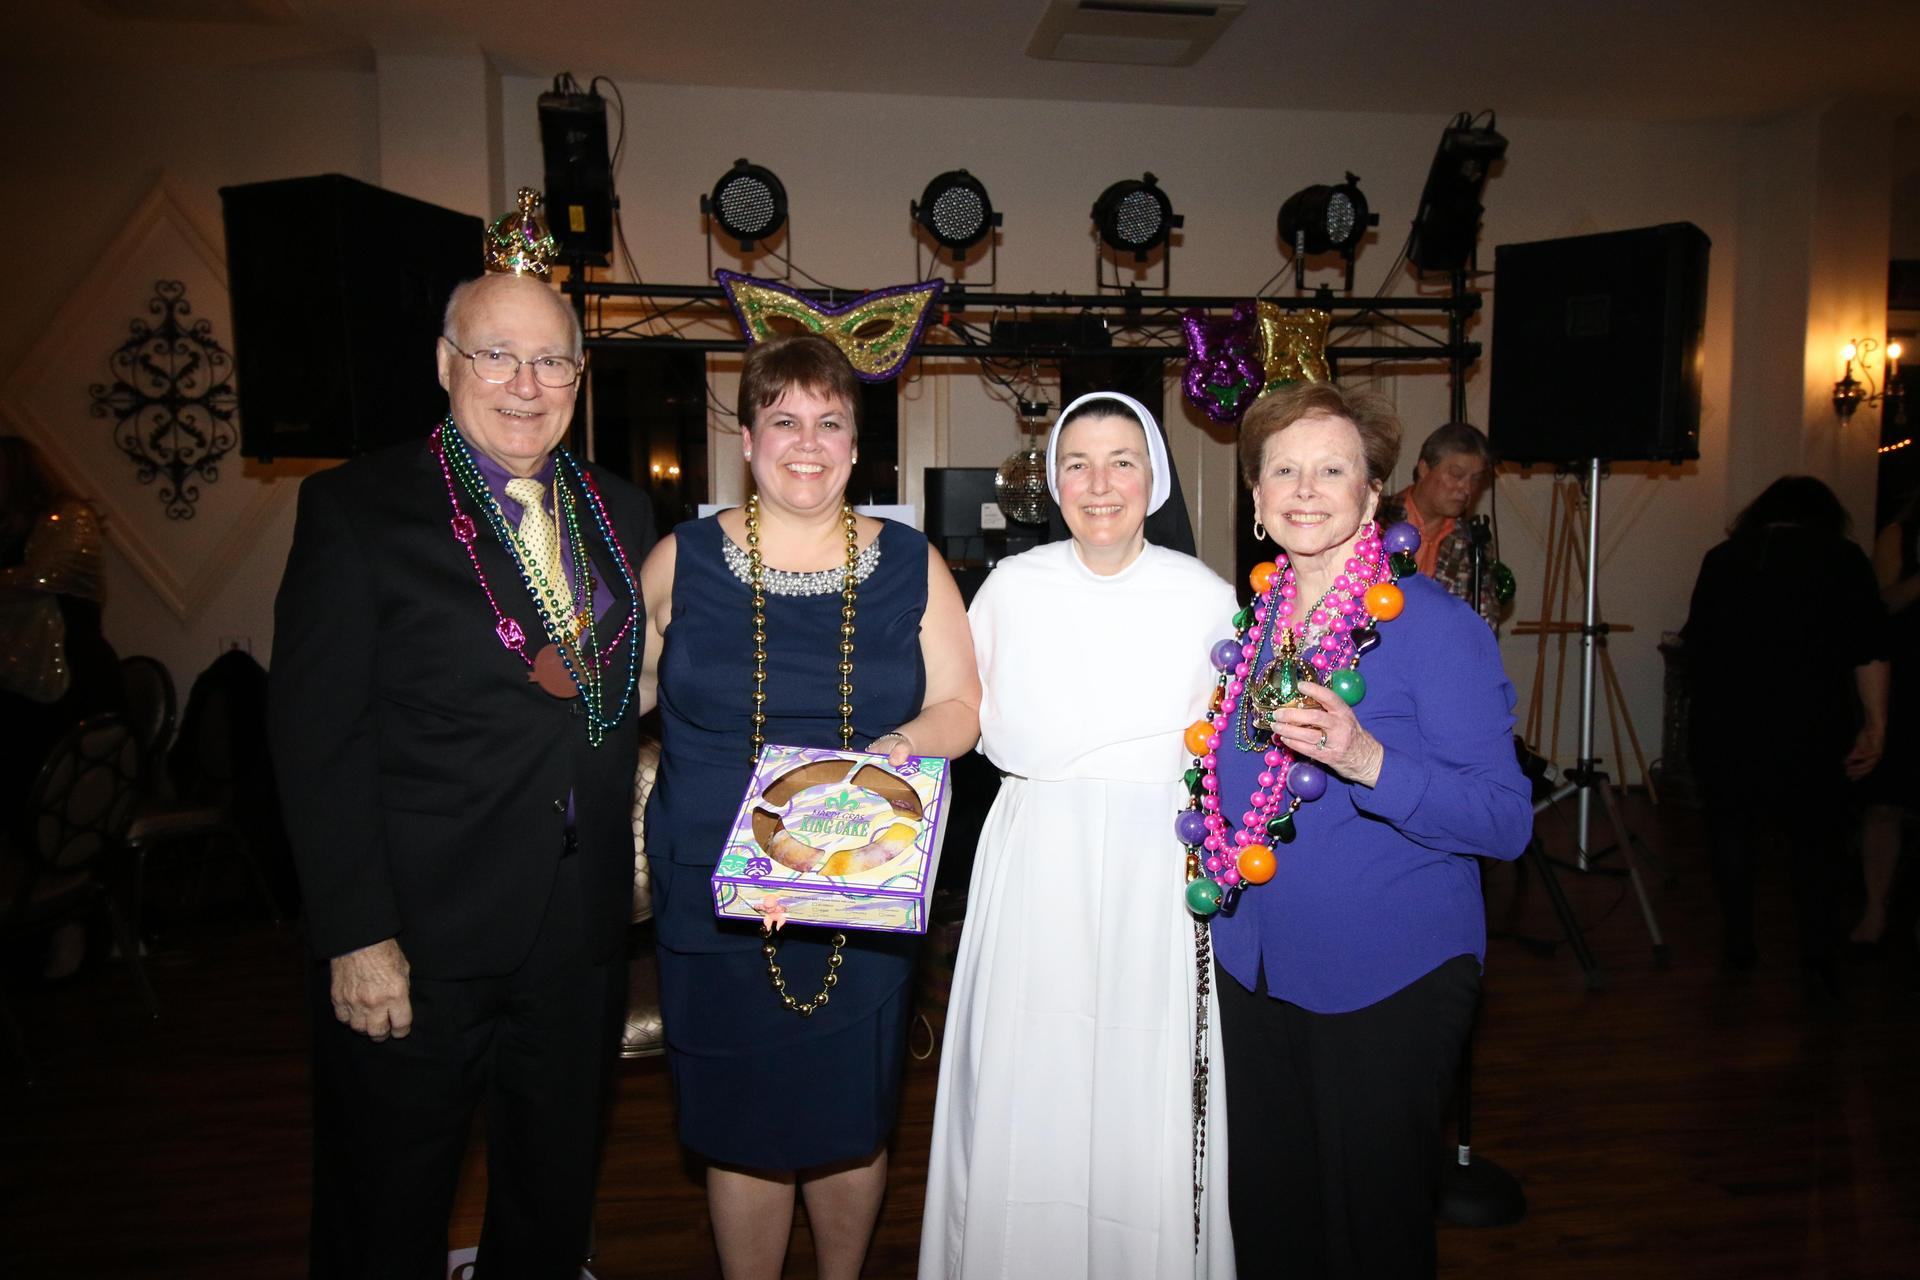 The King and Queen of Mardi Gras are crowned